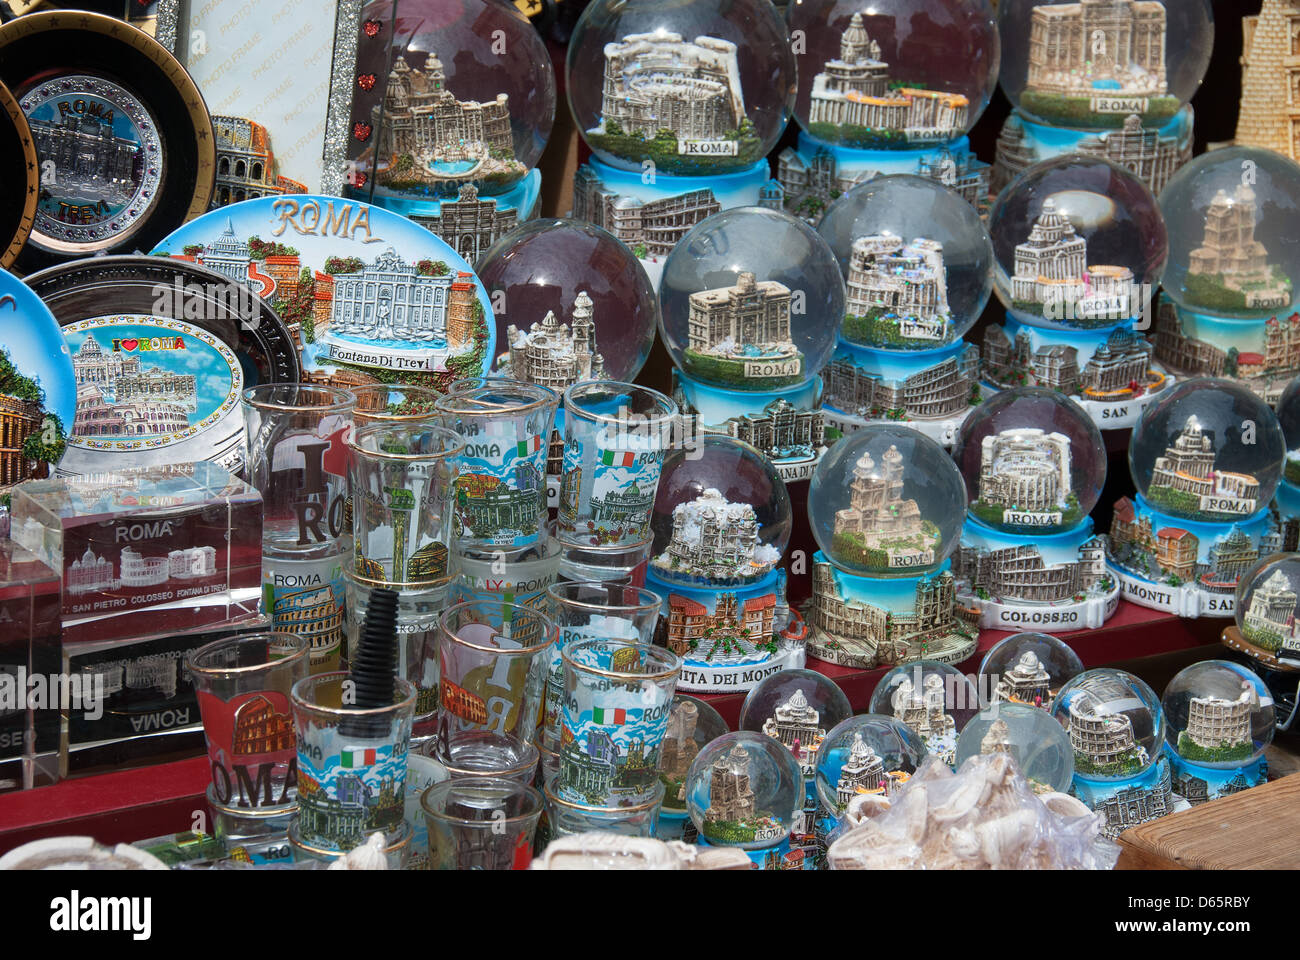 Rome Italy Snow Globes And Other Souvenirs For Sale At A